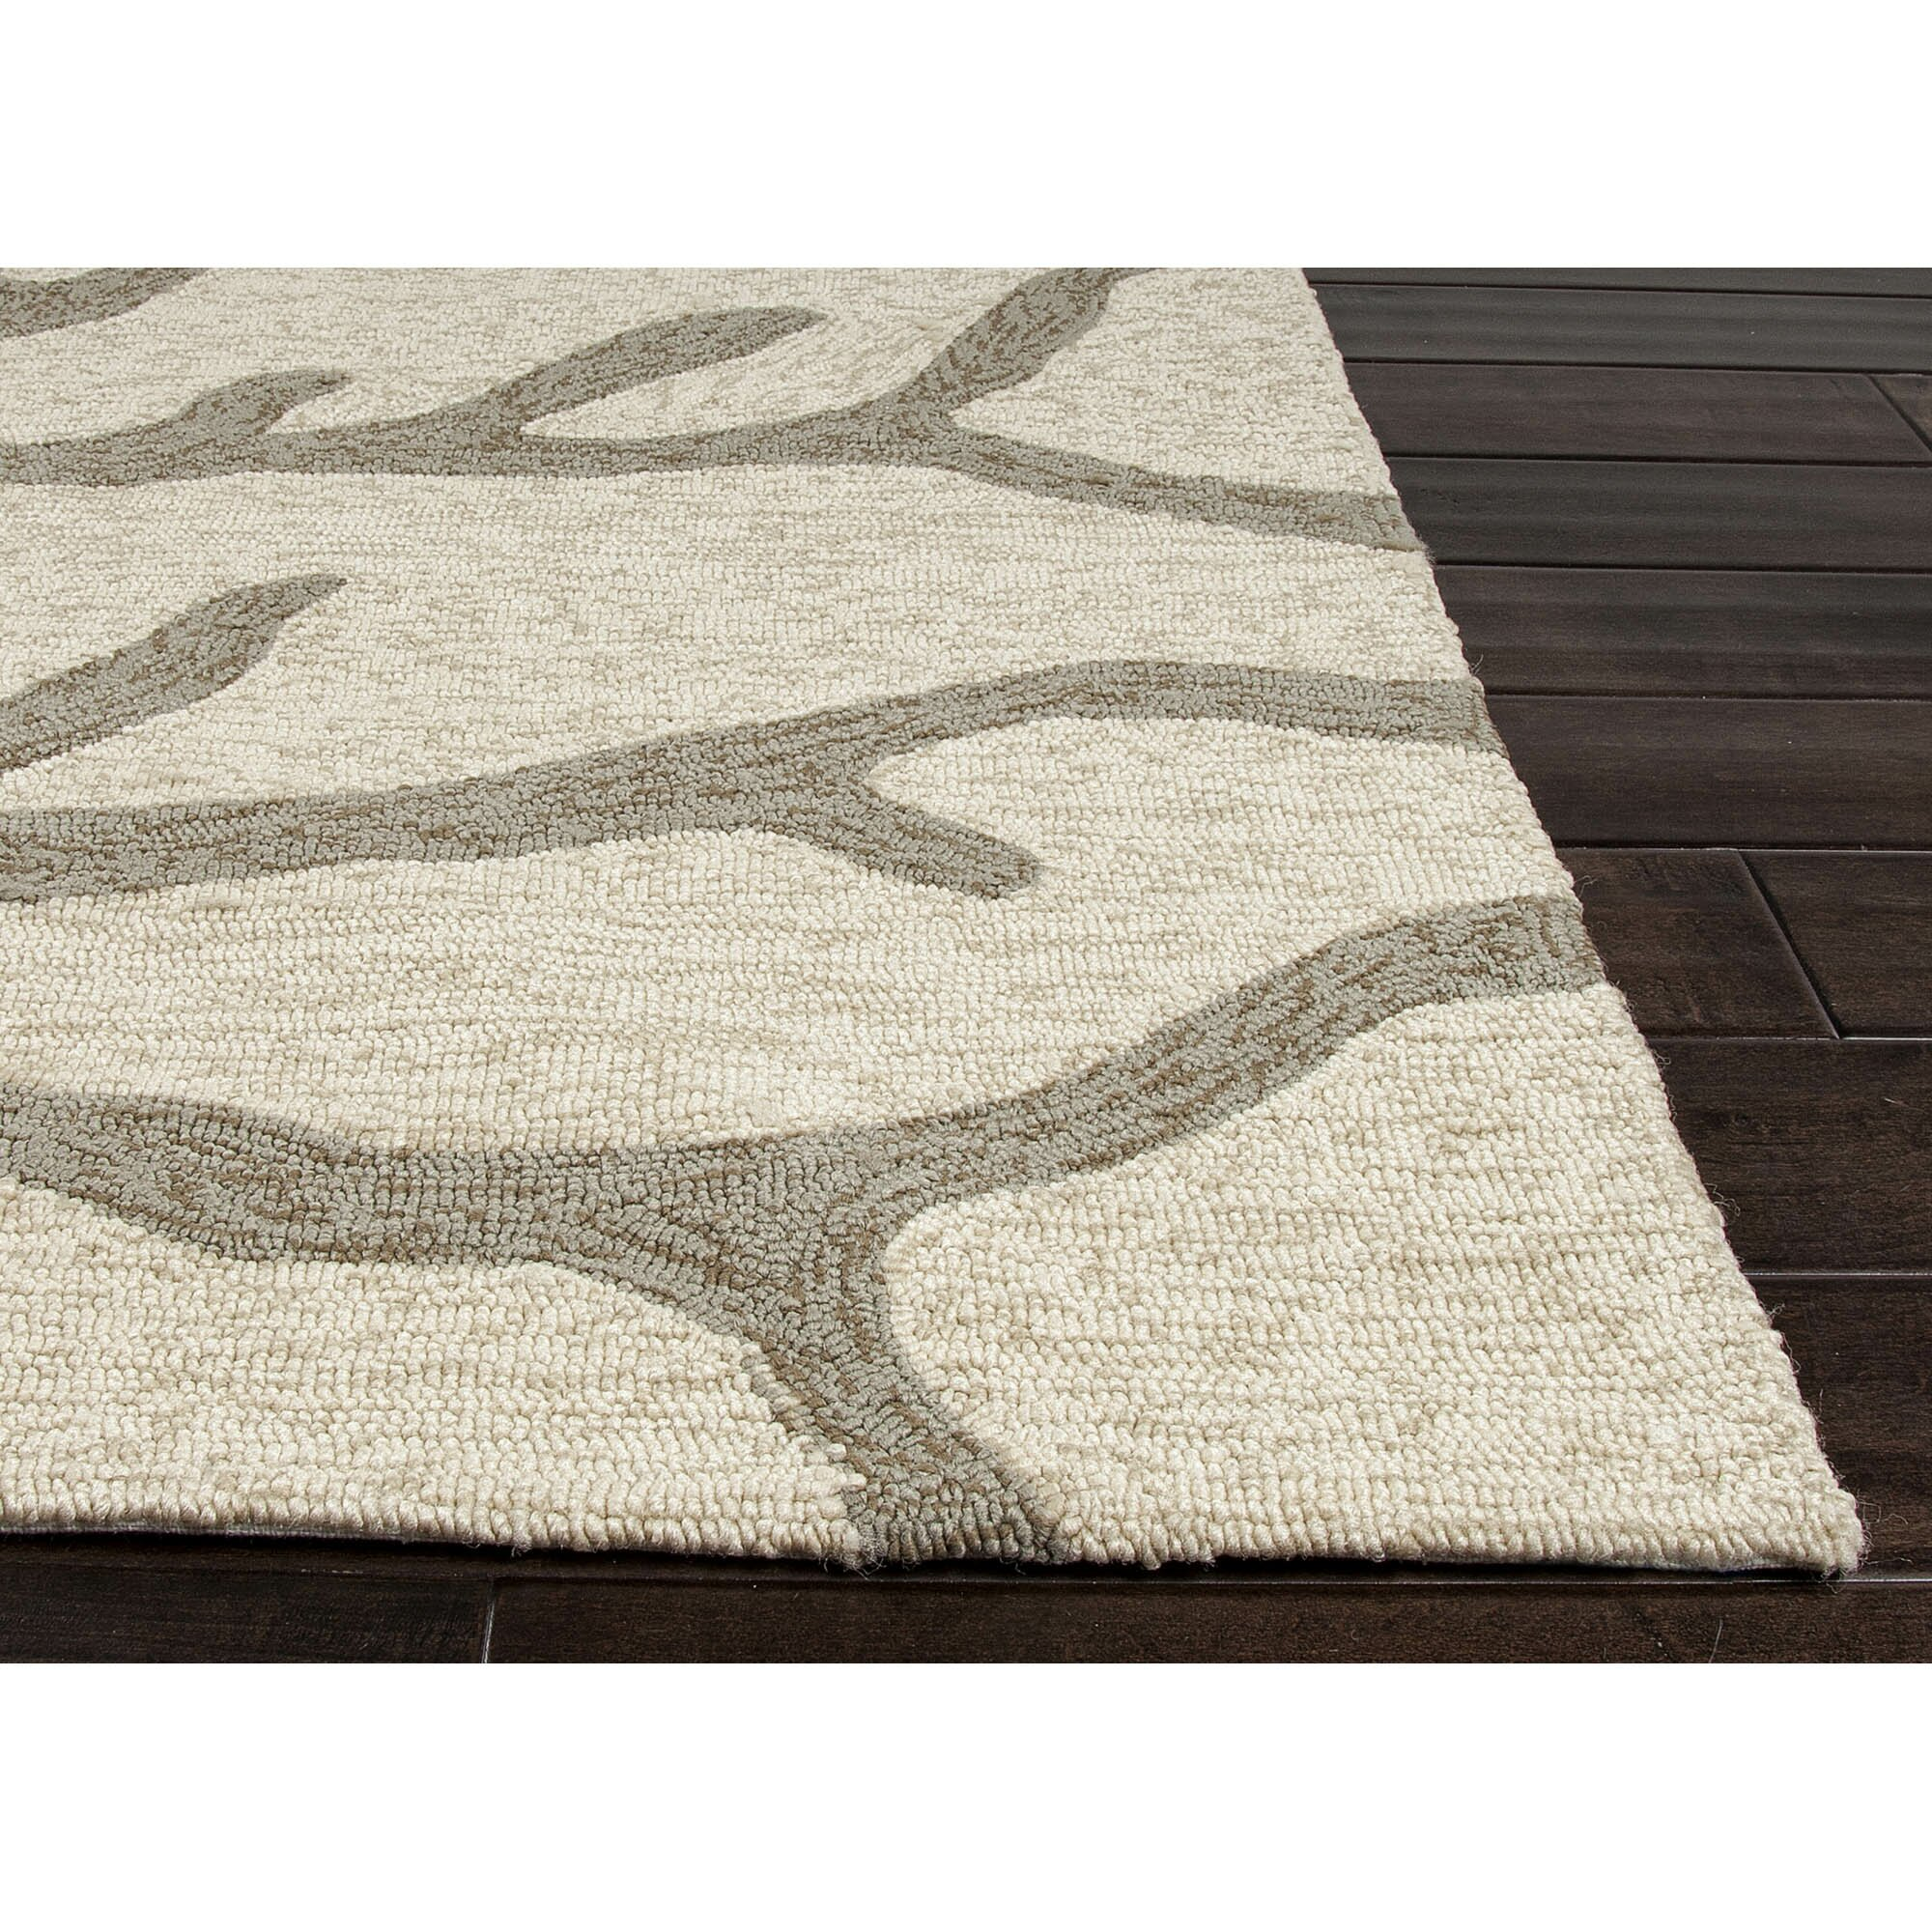 Jaipurliving coastal lagoon ivory grey indoor outdoor area for Indoor out door rugs